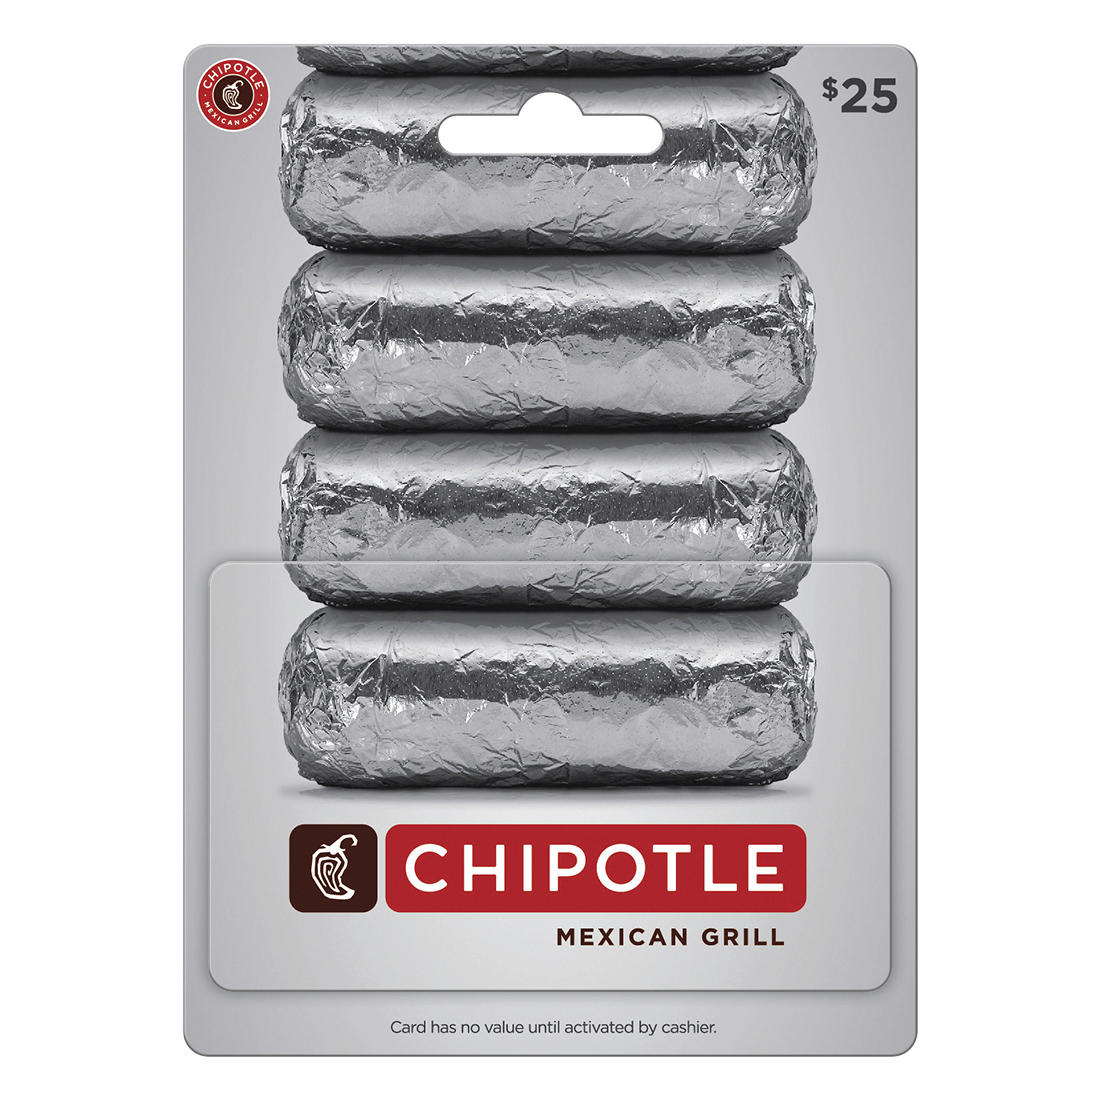 photo about Chipotle Printable Coupon titled $25 Chipotle Mexican Grill Present Card